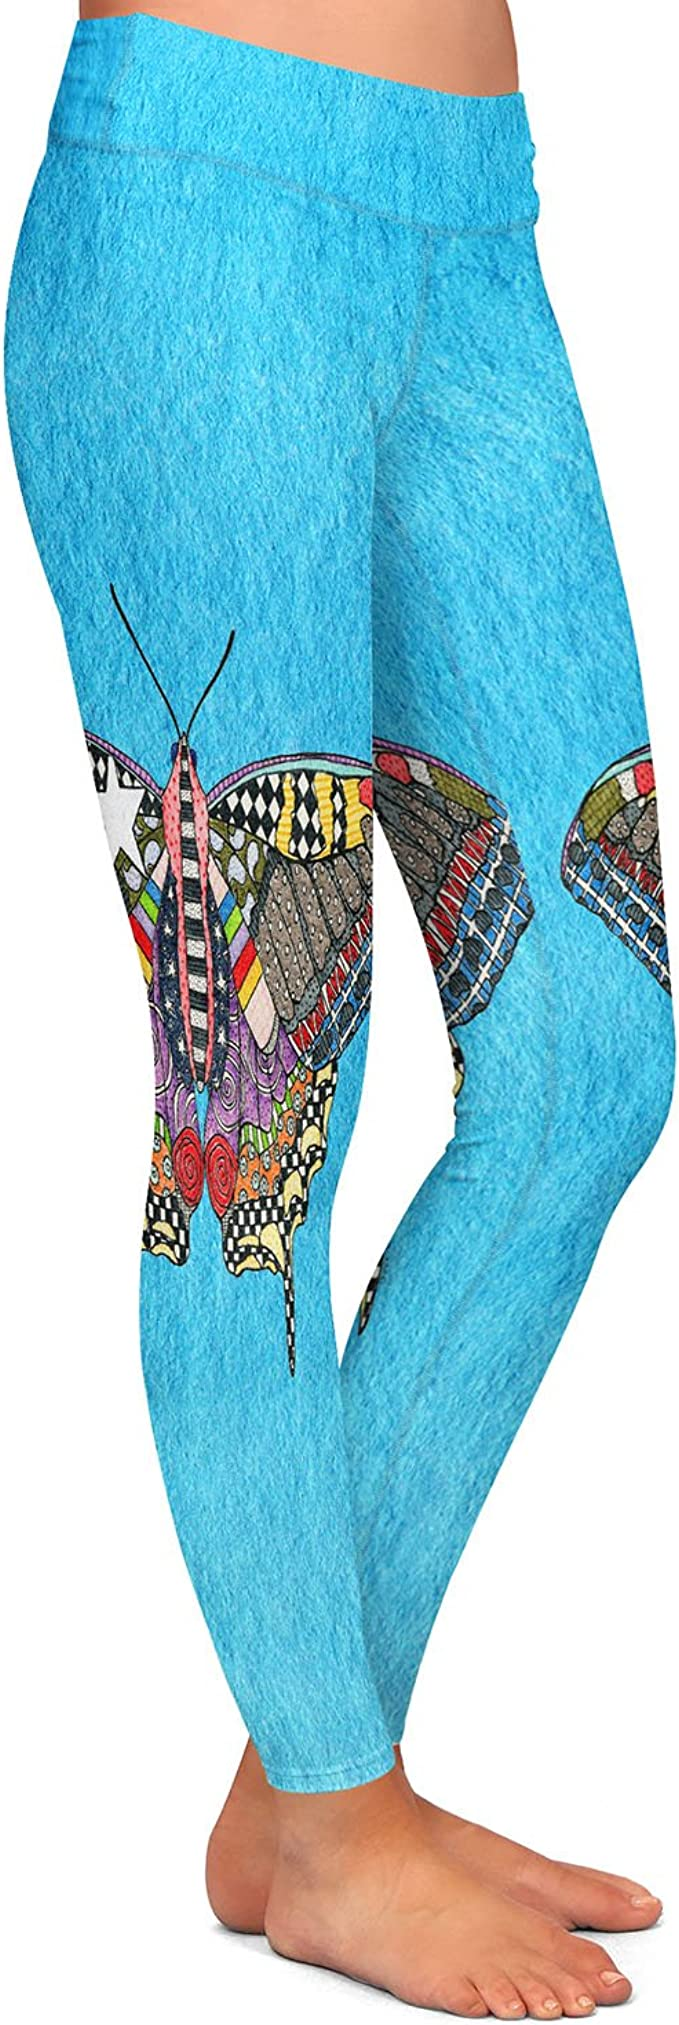 Butterfly White Athletic Yoga Leggings from DiaNoche Designs by Marley Ungaro